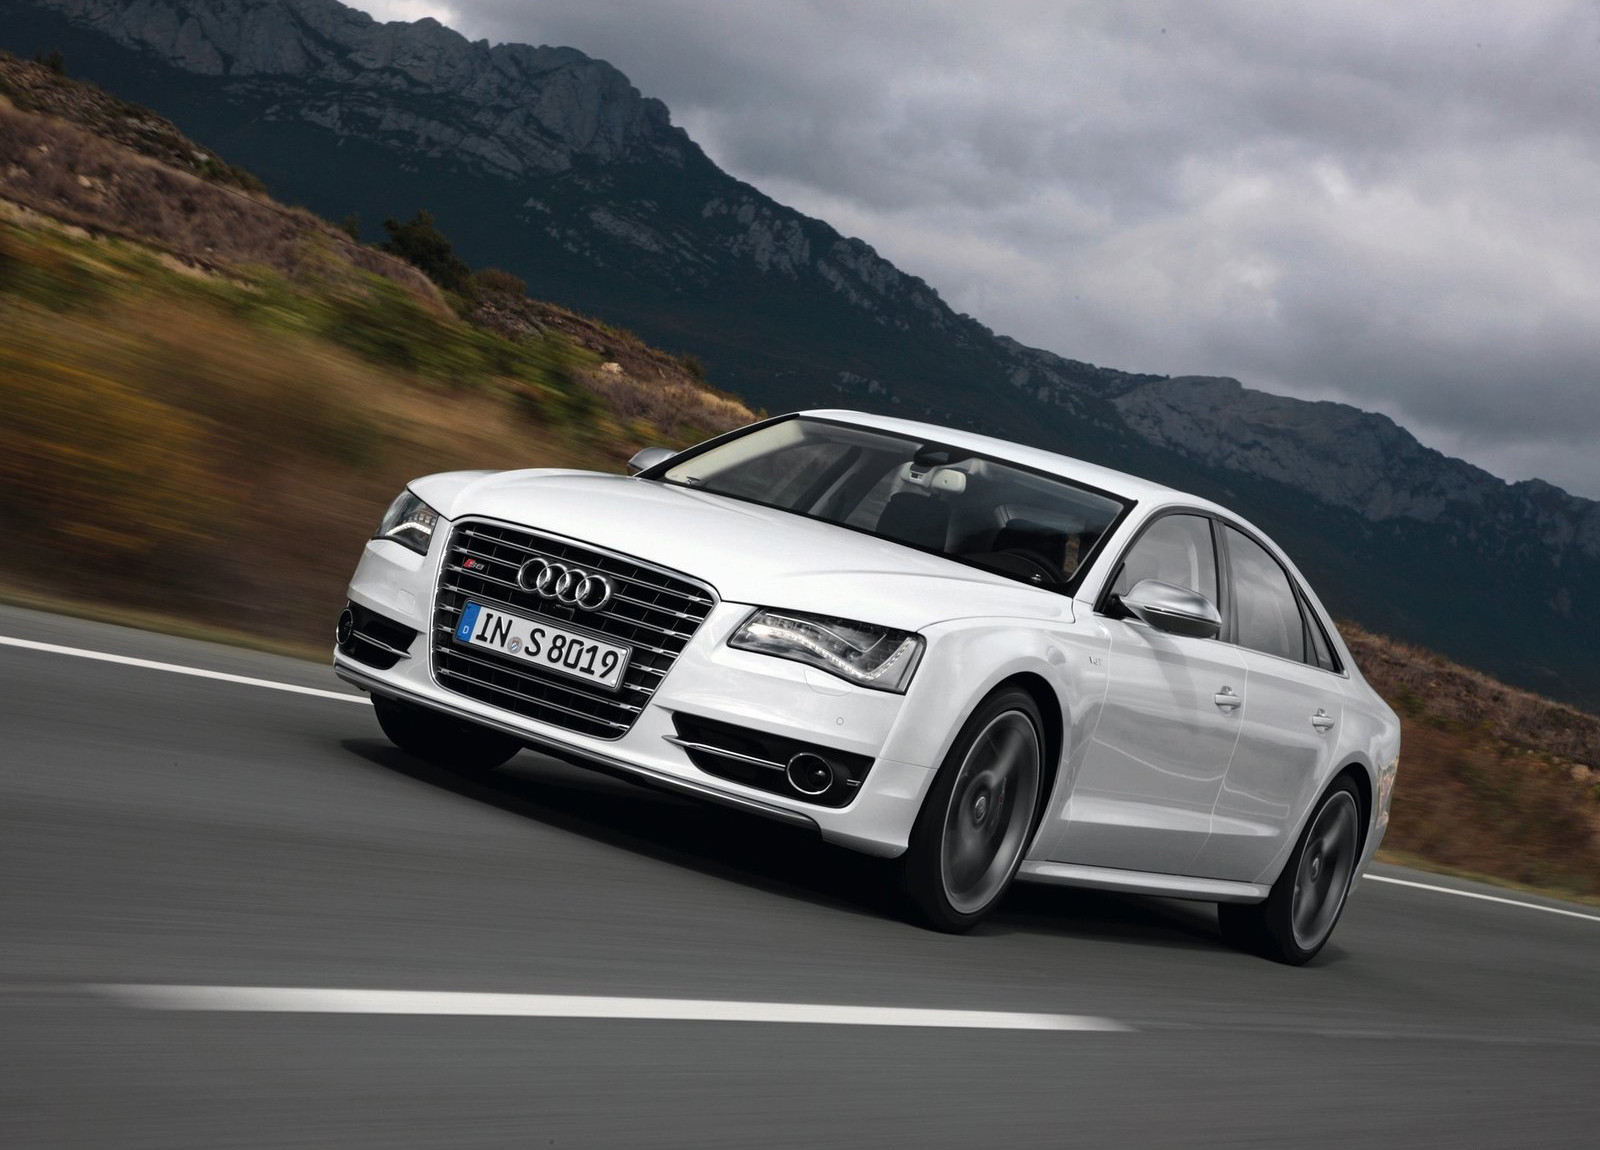 2012 2013 audi s8 wallpapers the world of audi. Black Bedroom Furniture Sets. Home Design Ideas